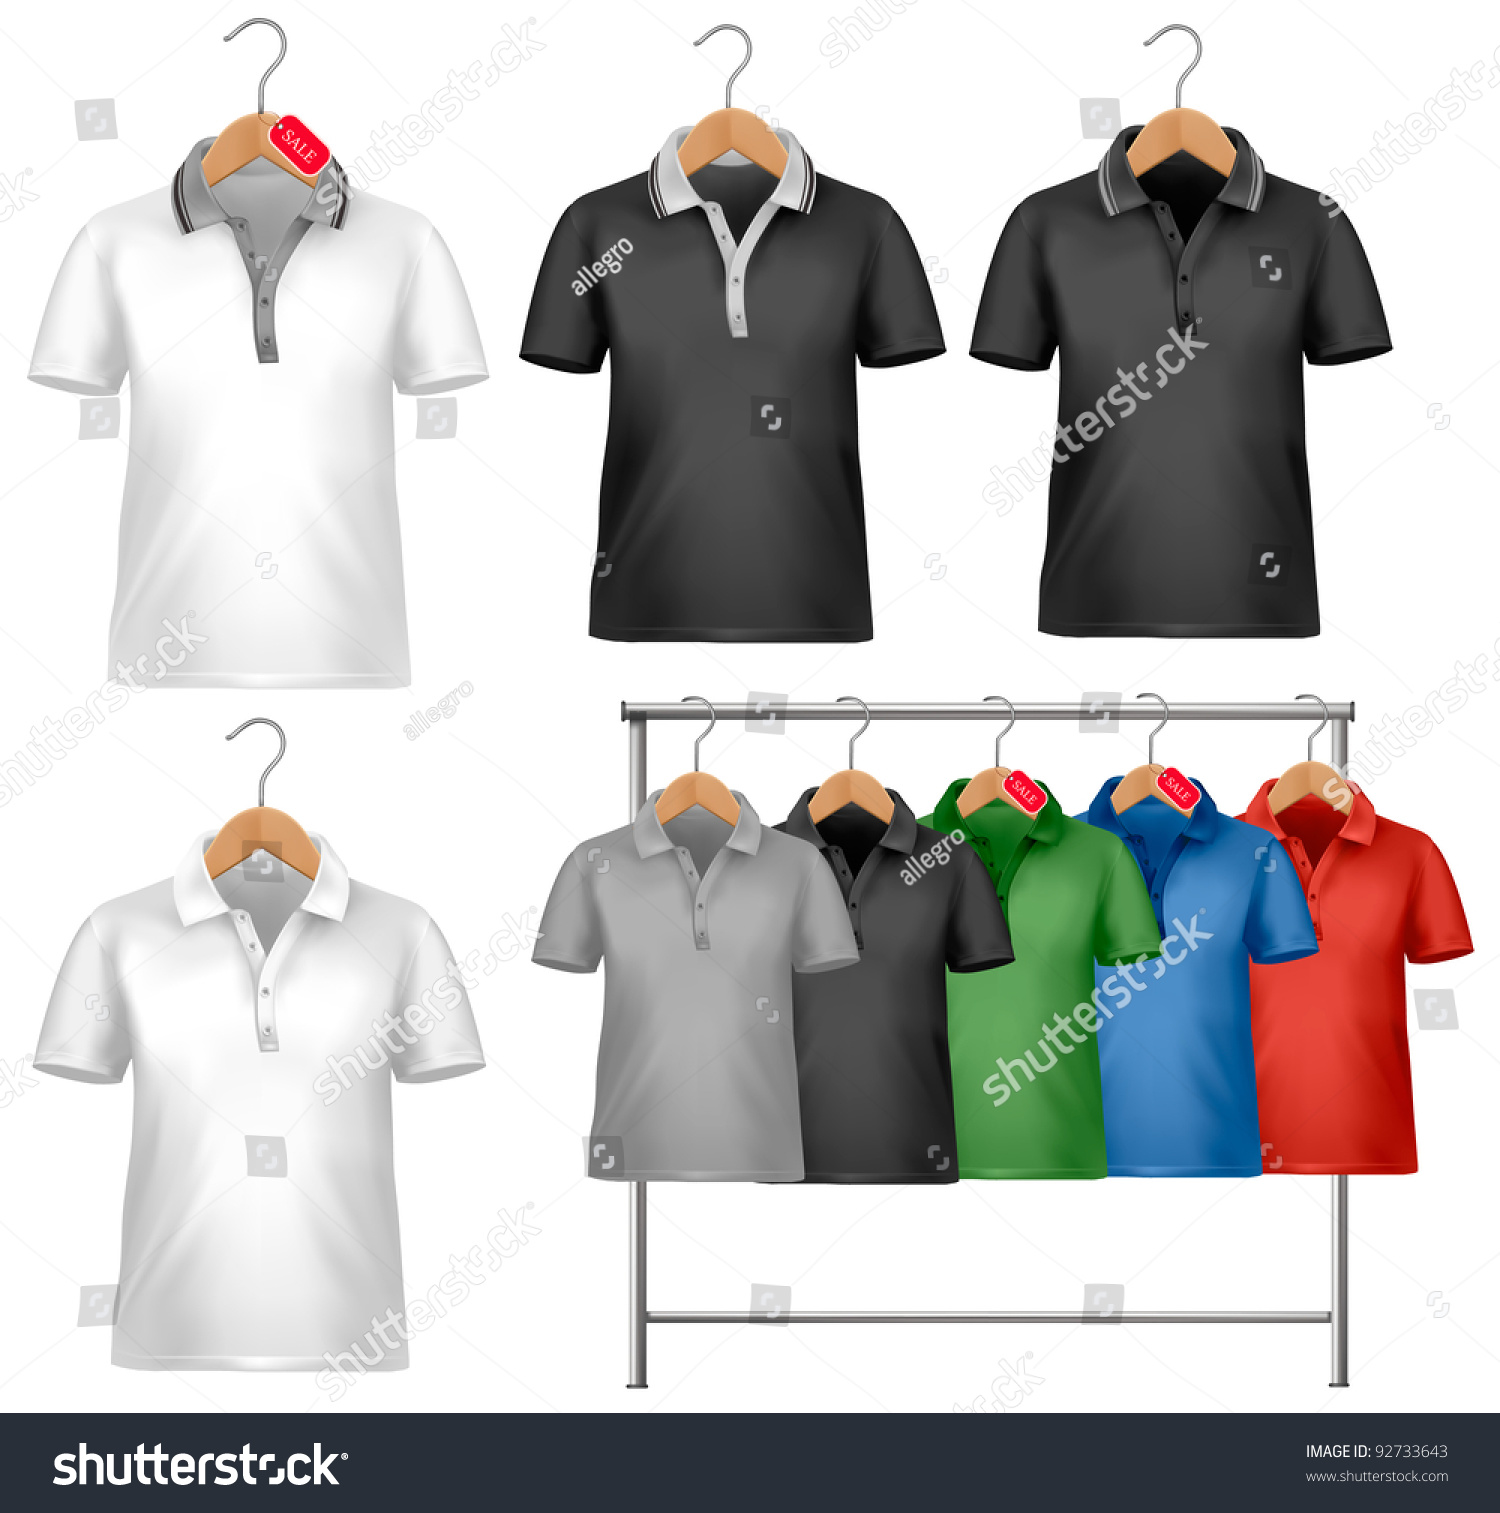 Shirt design price - White And Colorful T Shirt Design Template Clothes Hanger With Shirts With Price Tags